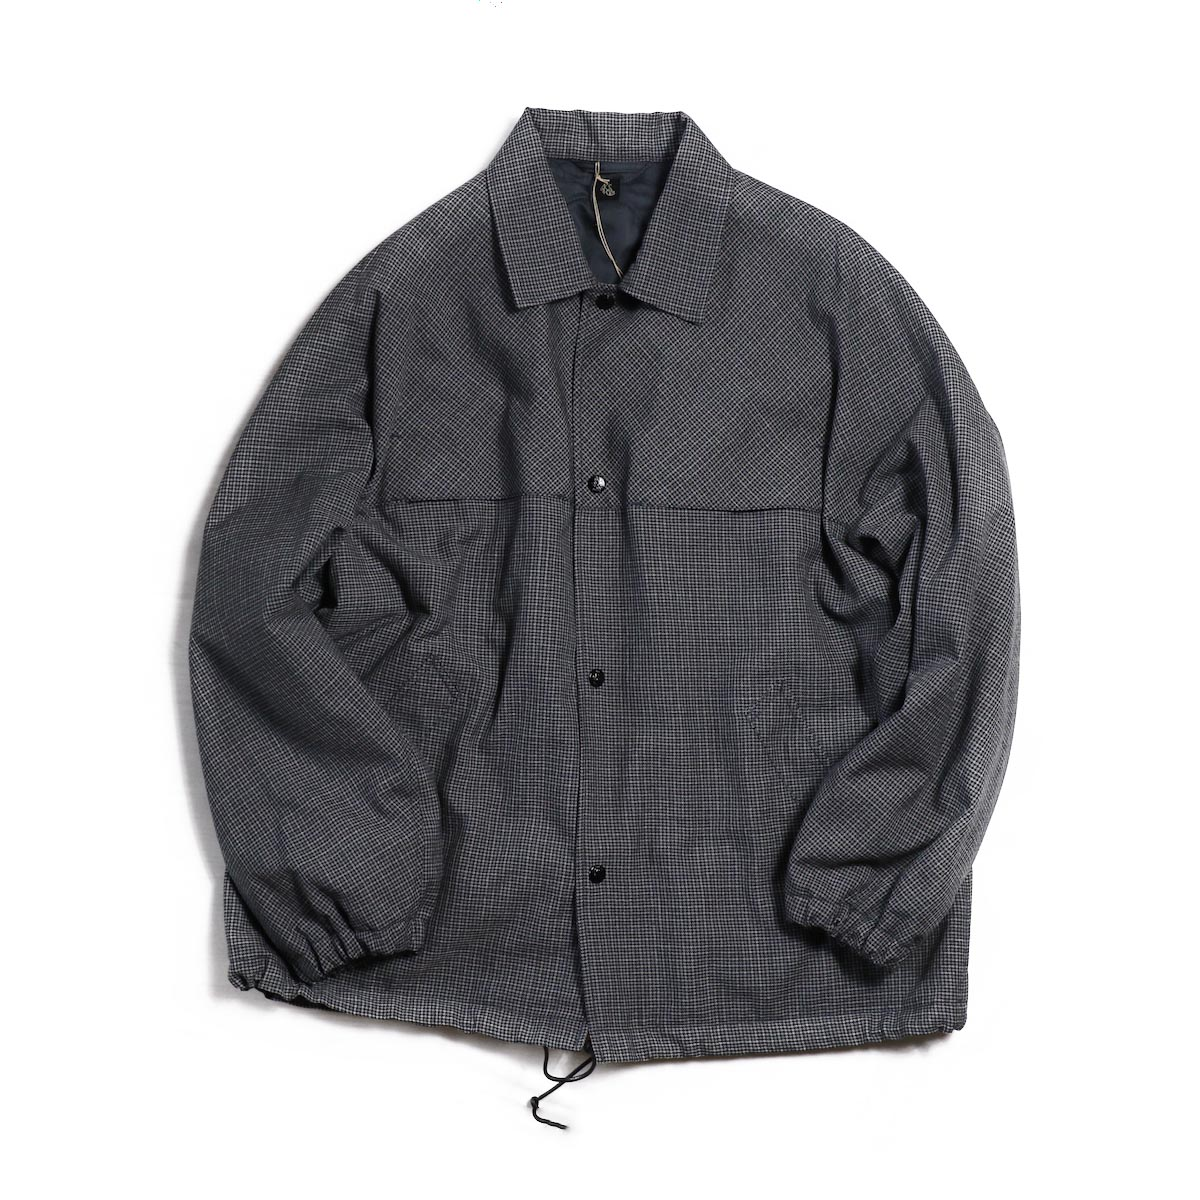 Kaptain Sunshine / Coach Jacket -Grey Hound's Tooth